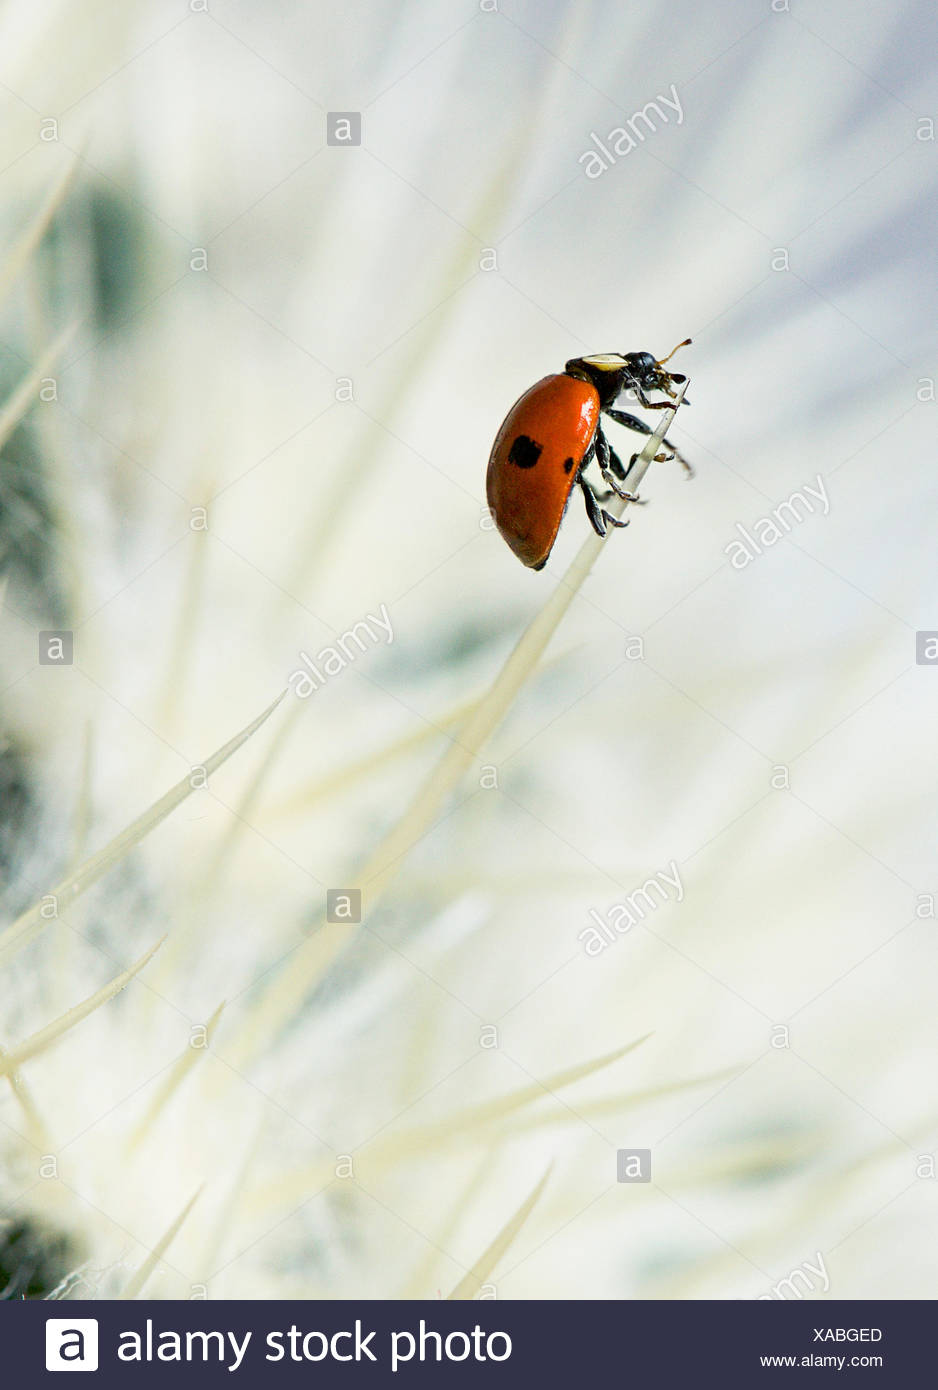 European seven spotted ladybird (Coccinella septempunctata) on a cactus - Stock Image